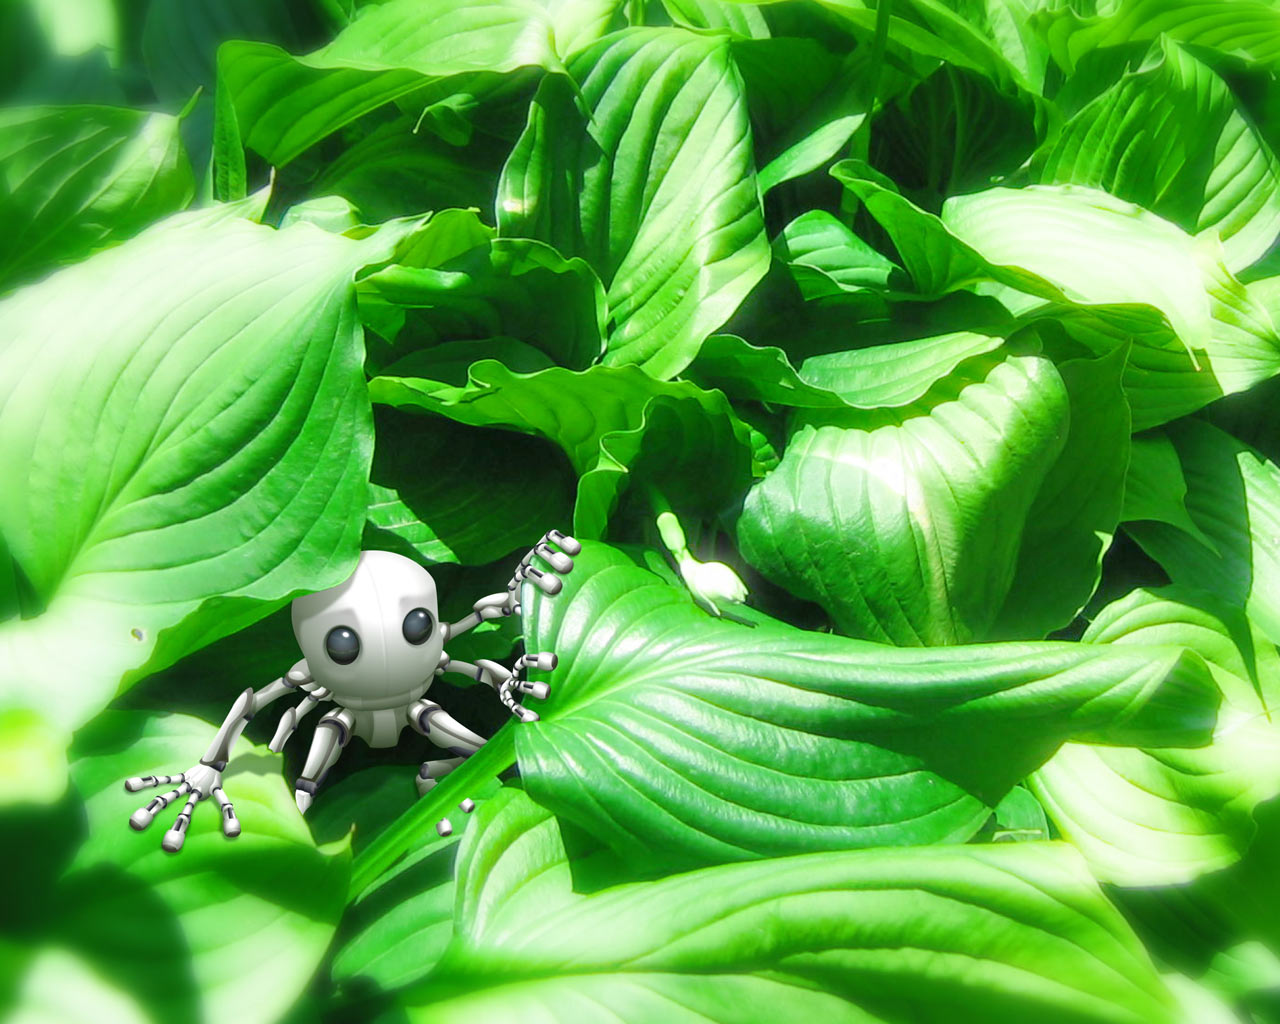 Robot on leaves